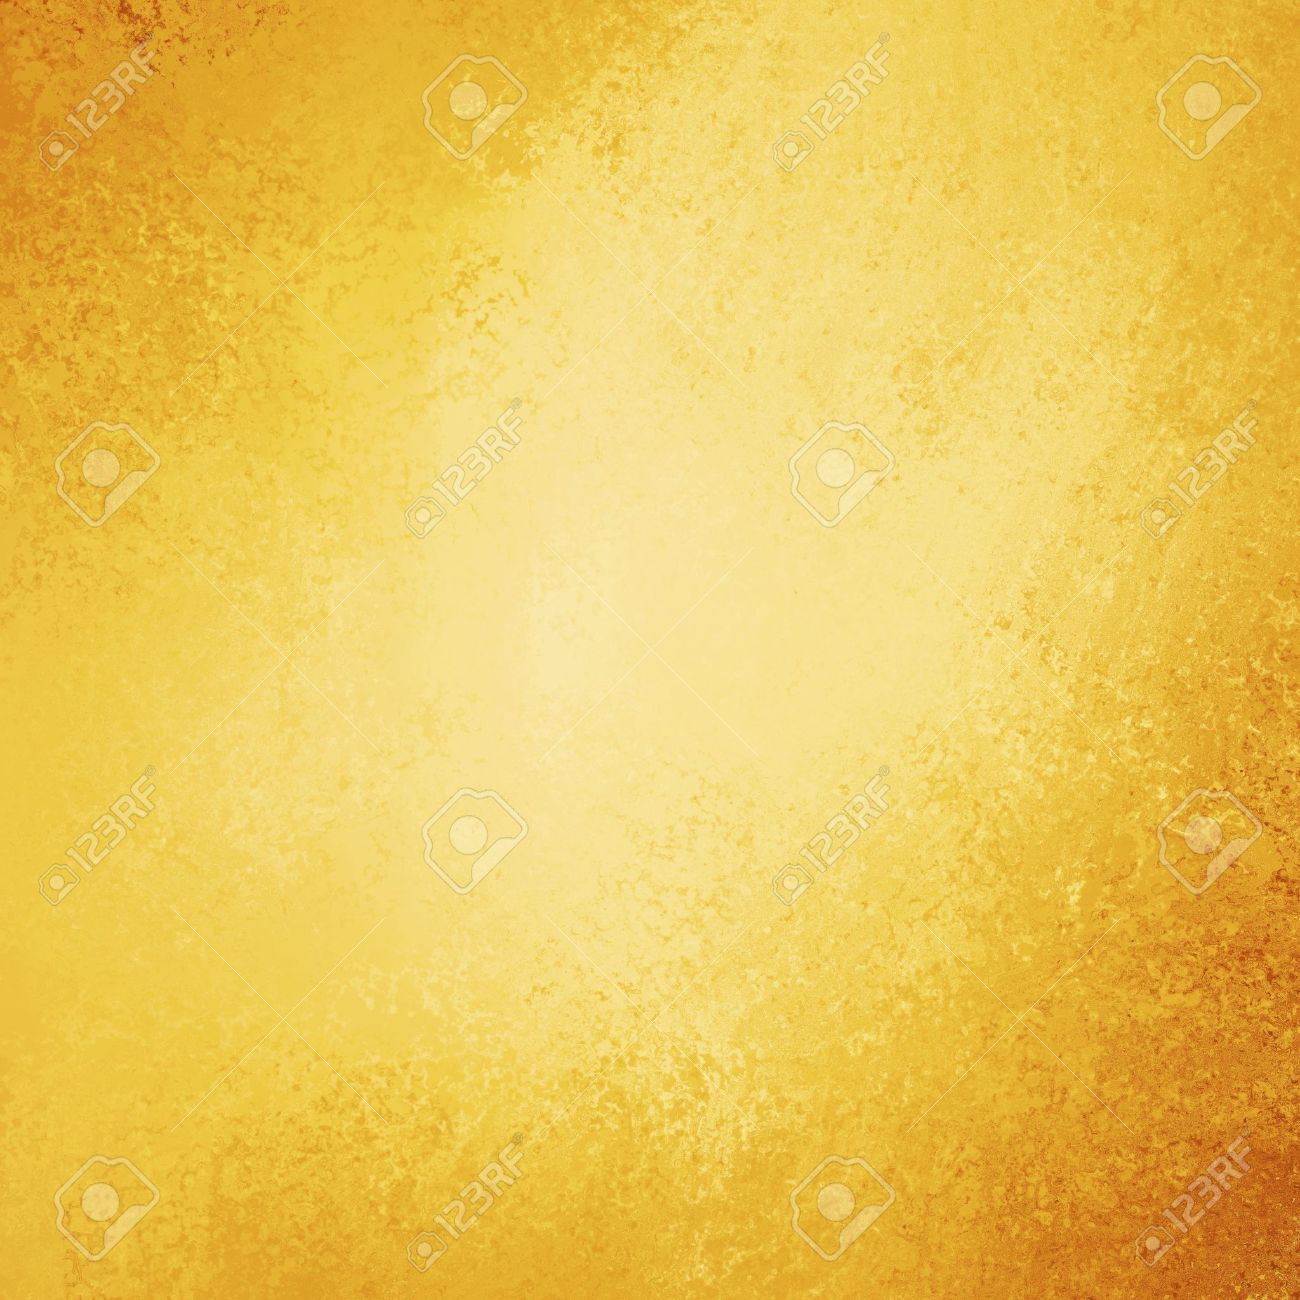 abstract gold background brown orange corners - 18399020